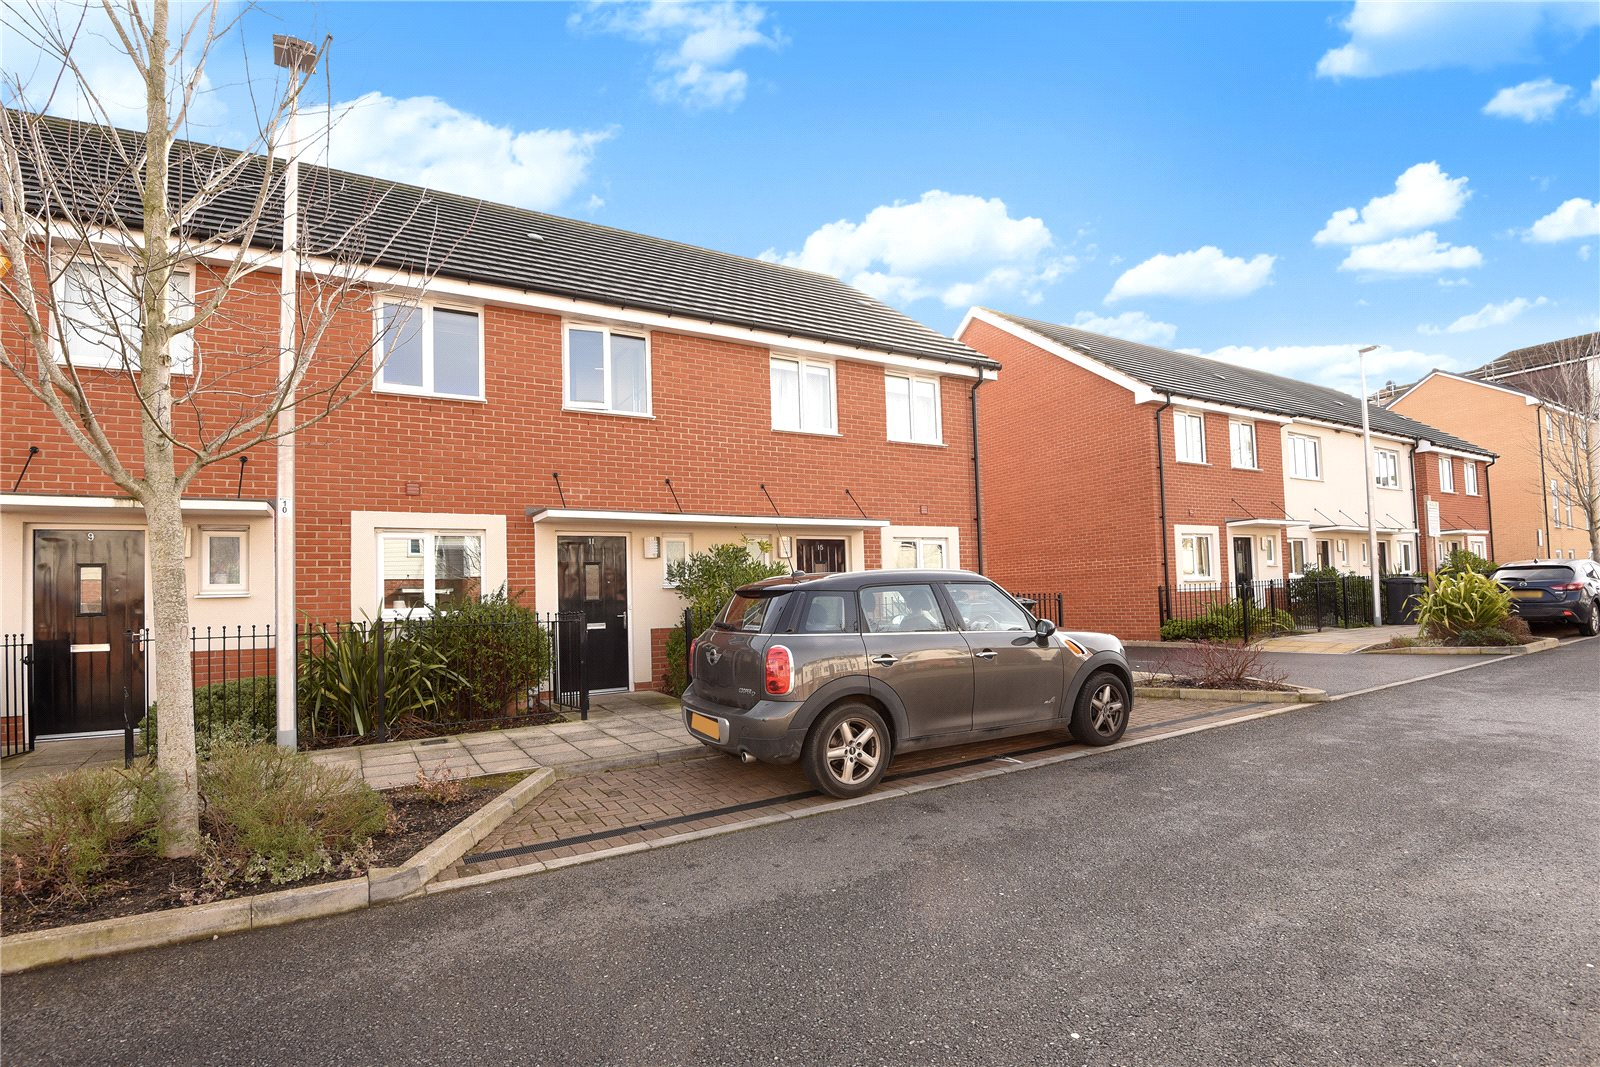 3 Bedrooms Terraced House for rent in St. Agnes Way, Reading, Berkshire, RG2